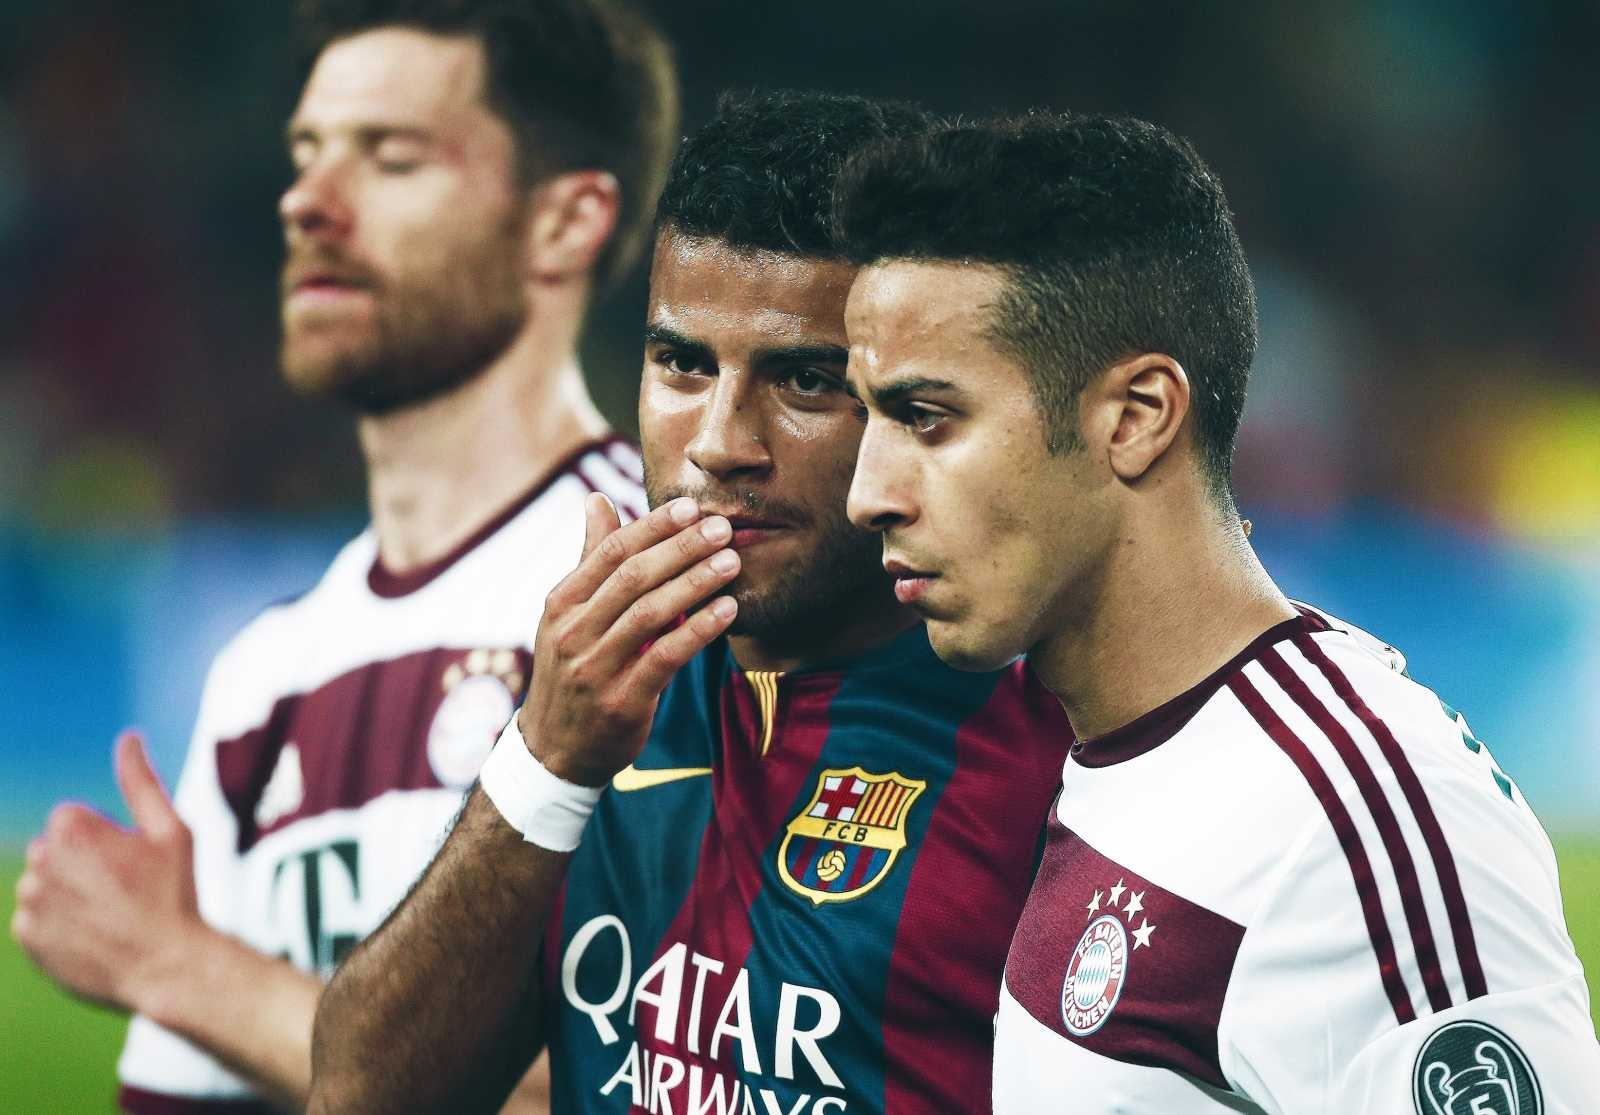 reputable site 753cc e1b36 Thiago and Rafinha  more than just your average brothers